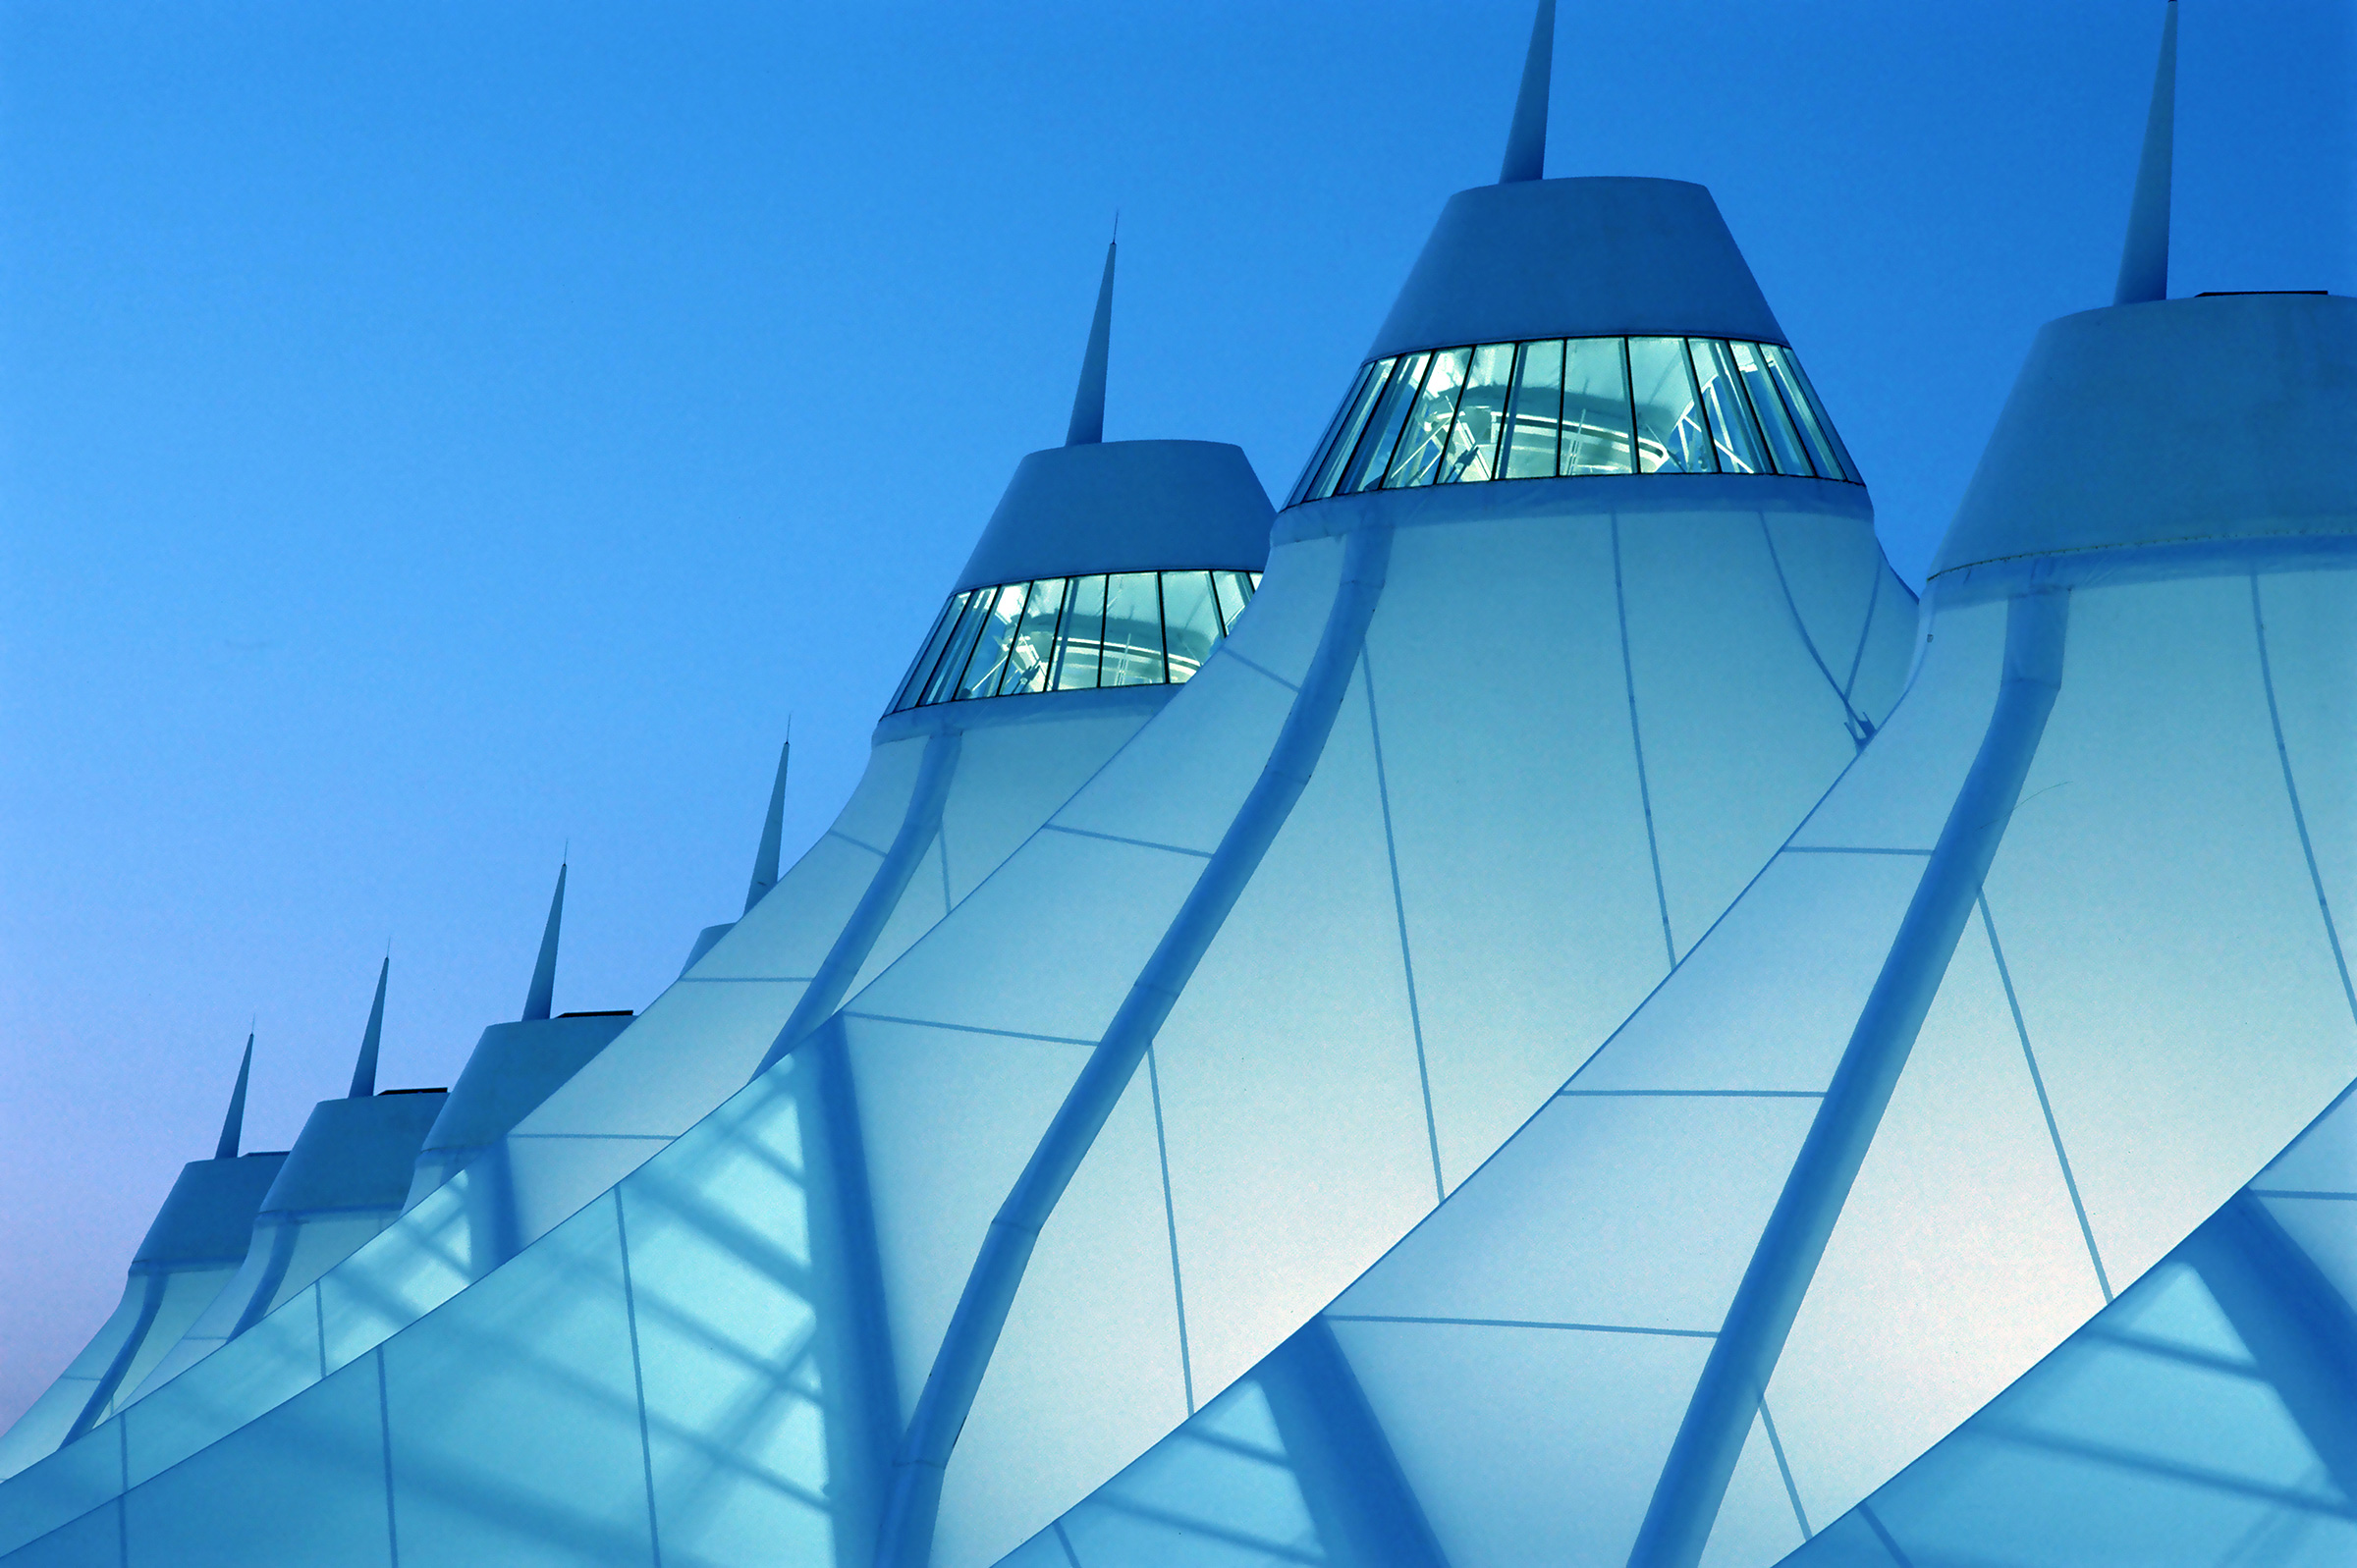 1. Denver International Airport 1